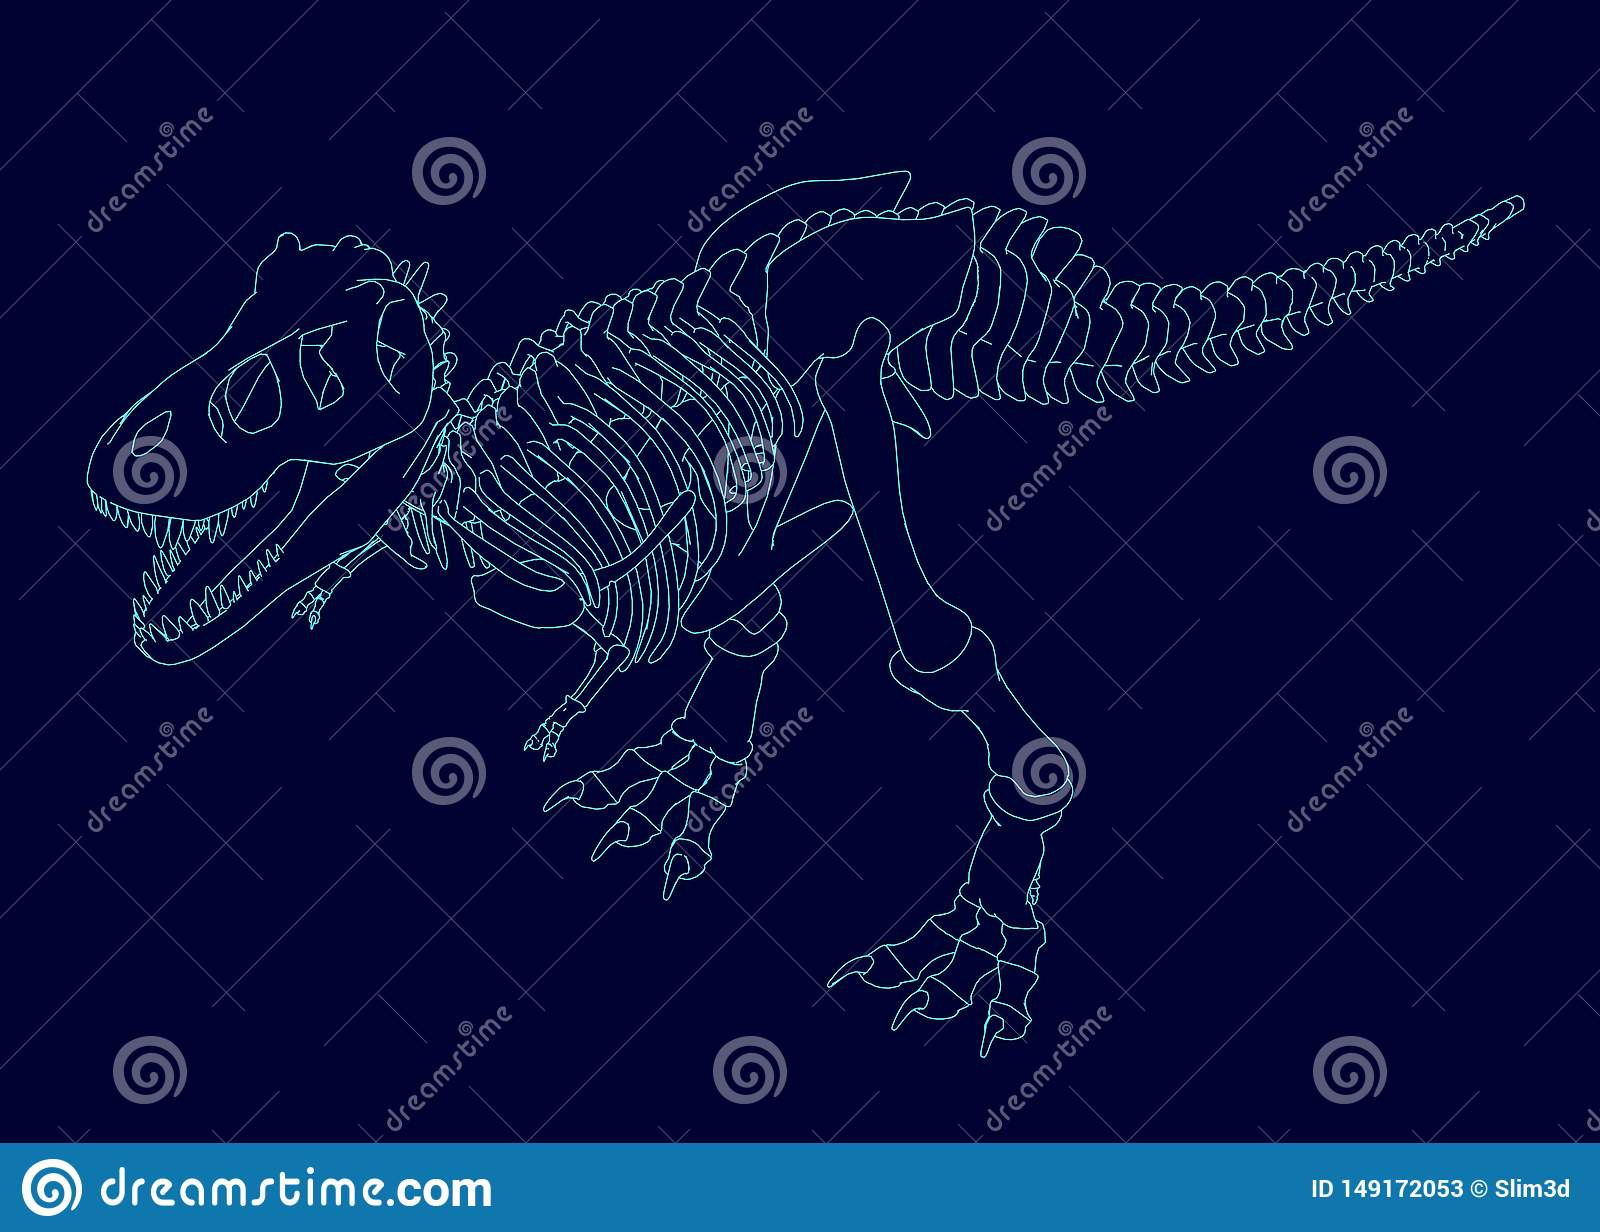 Contour of a dinosaur skeleton. Isometric view. Vector illustration